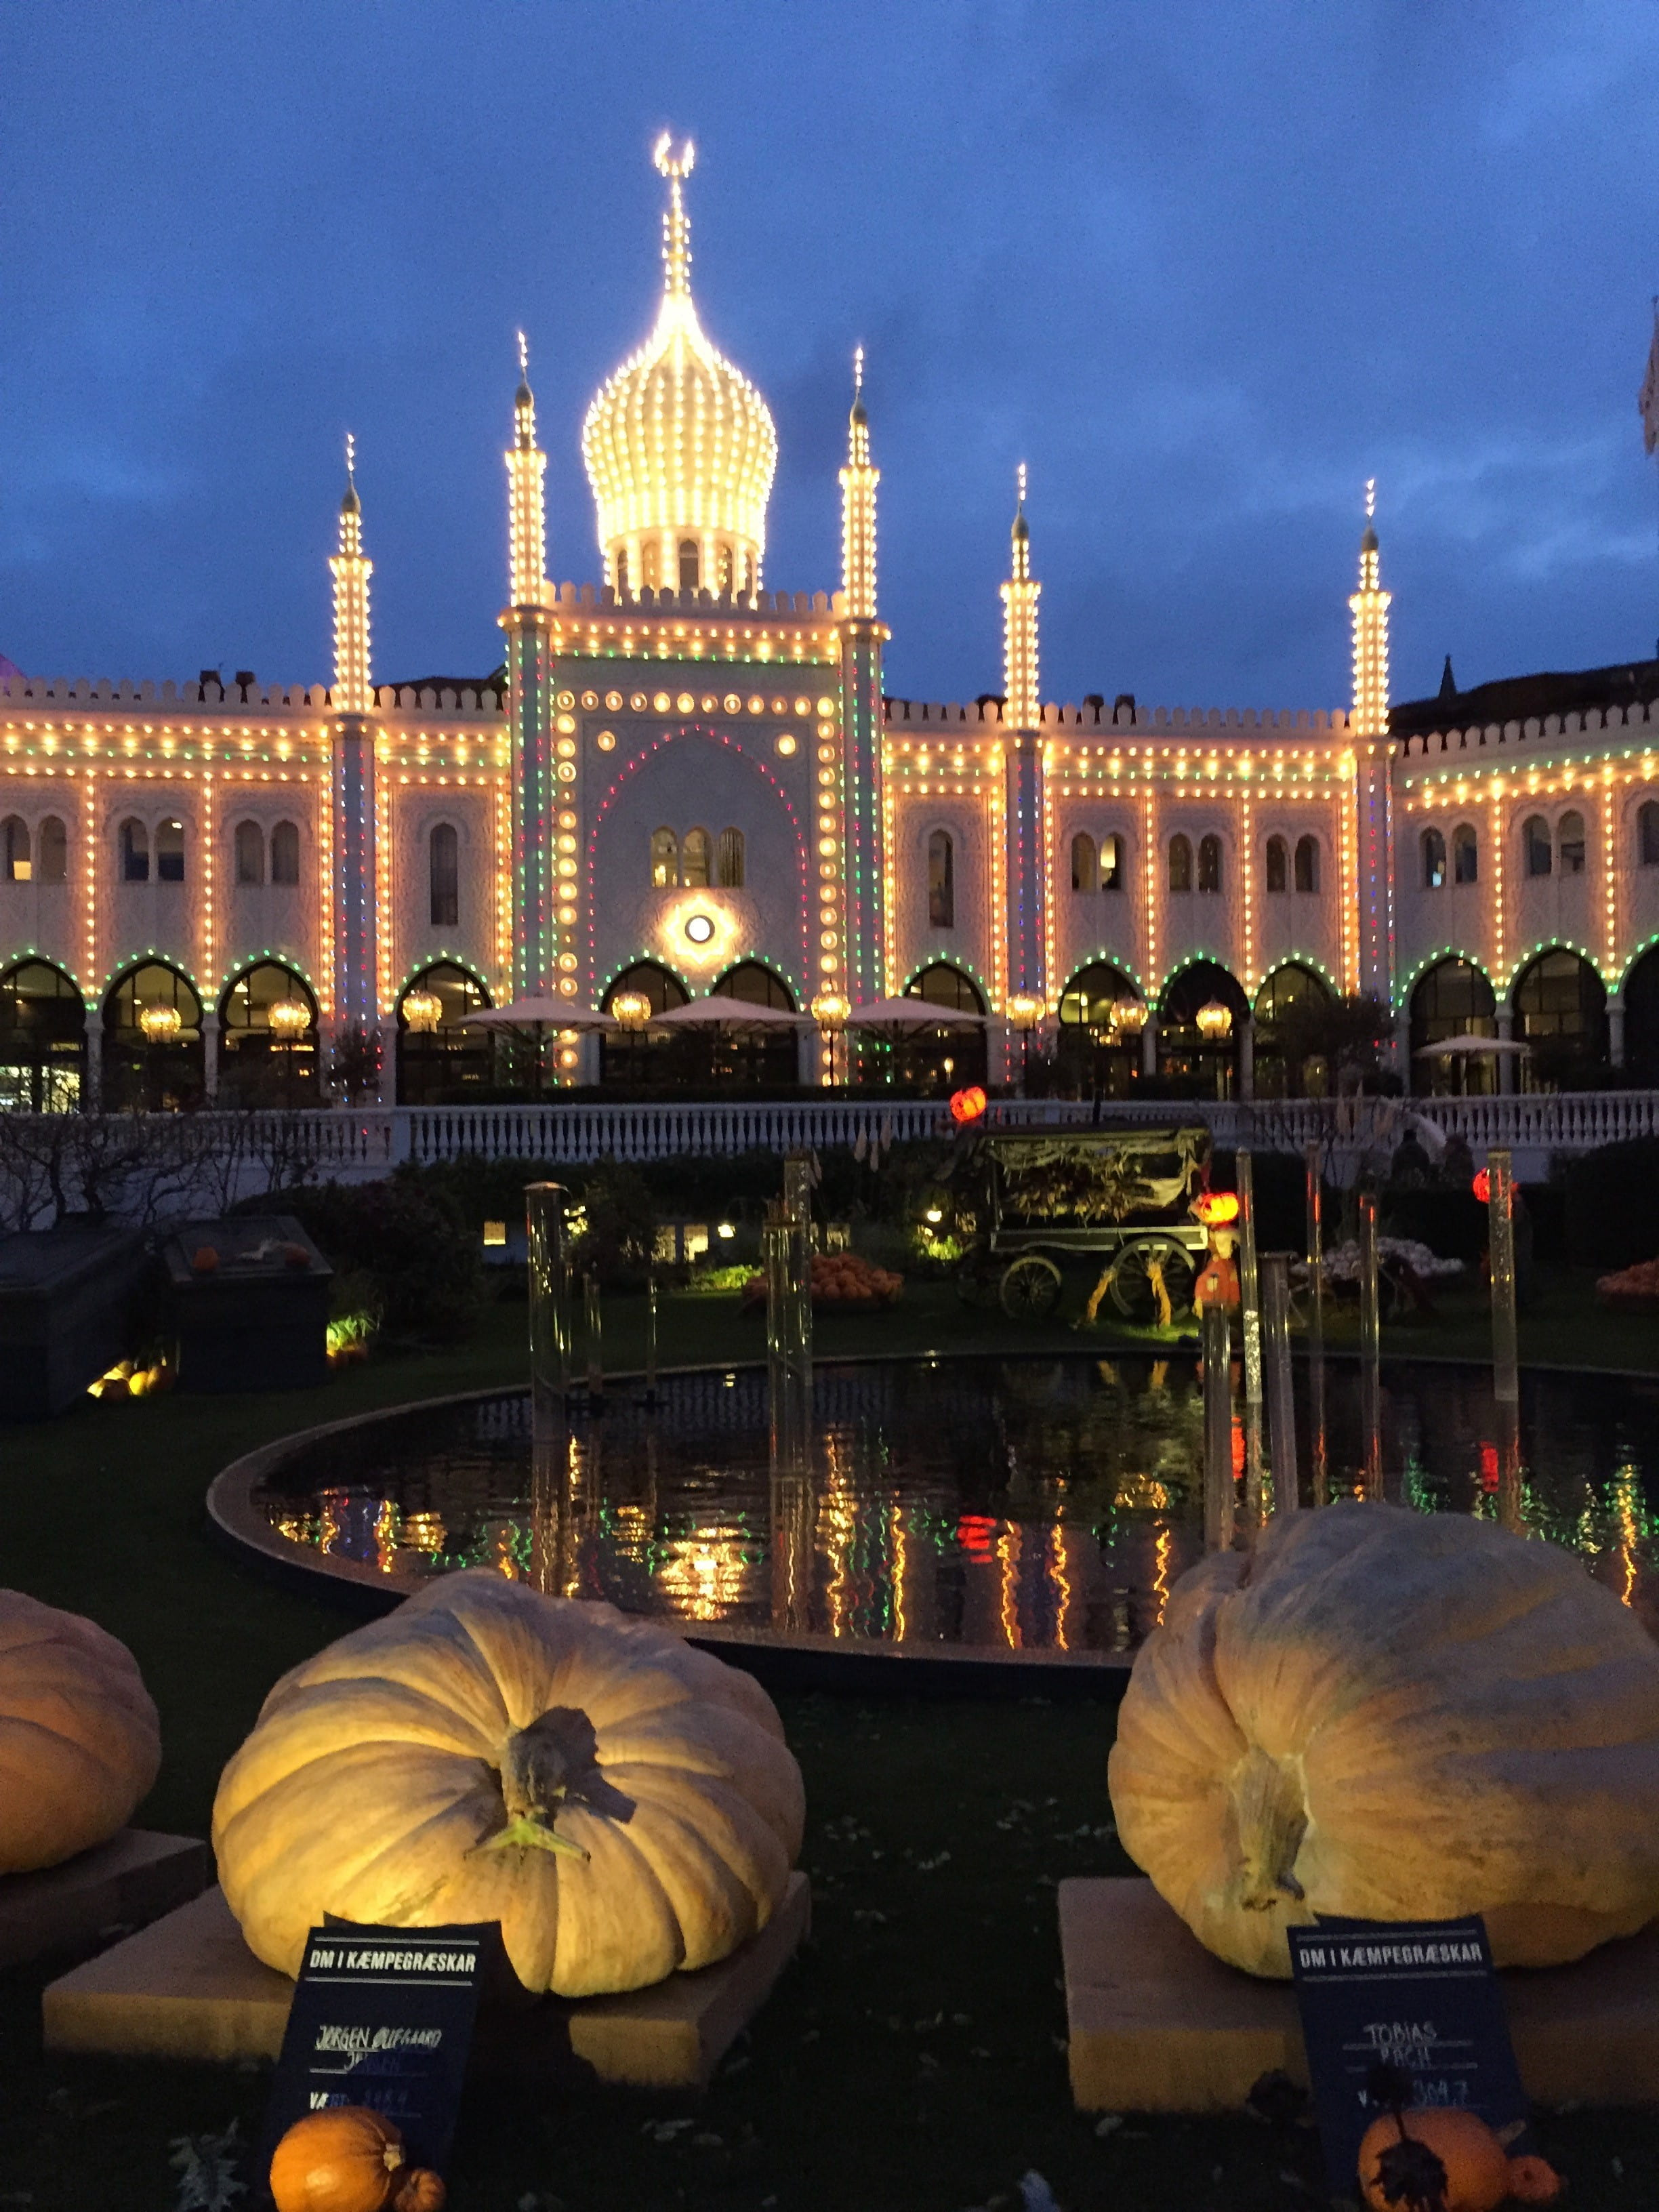 Tivoli amusement park decorated for Halloween